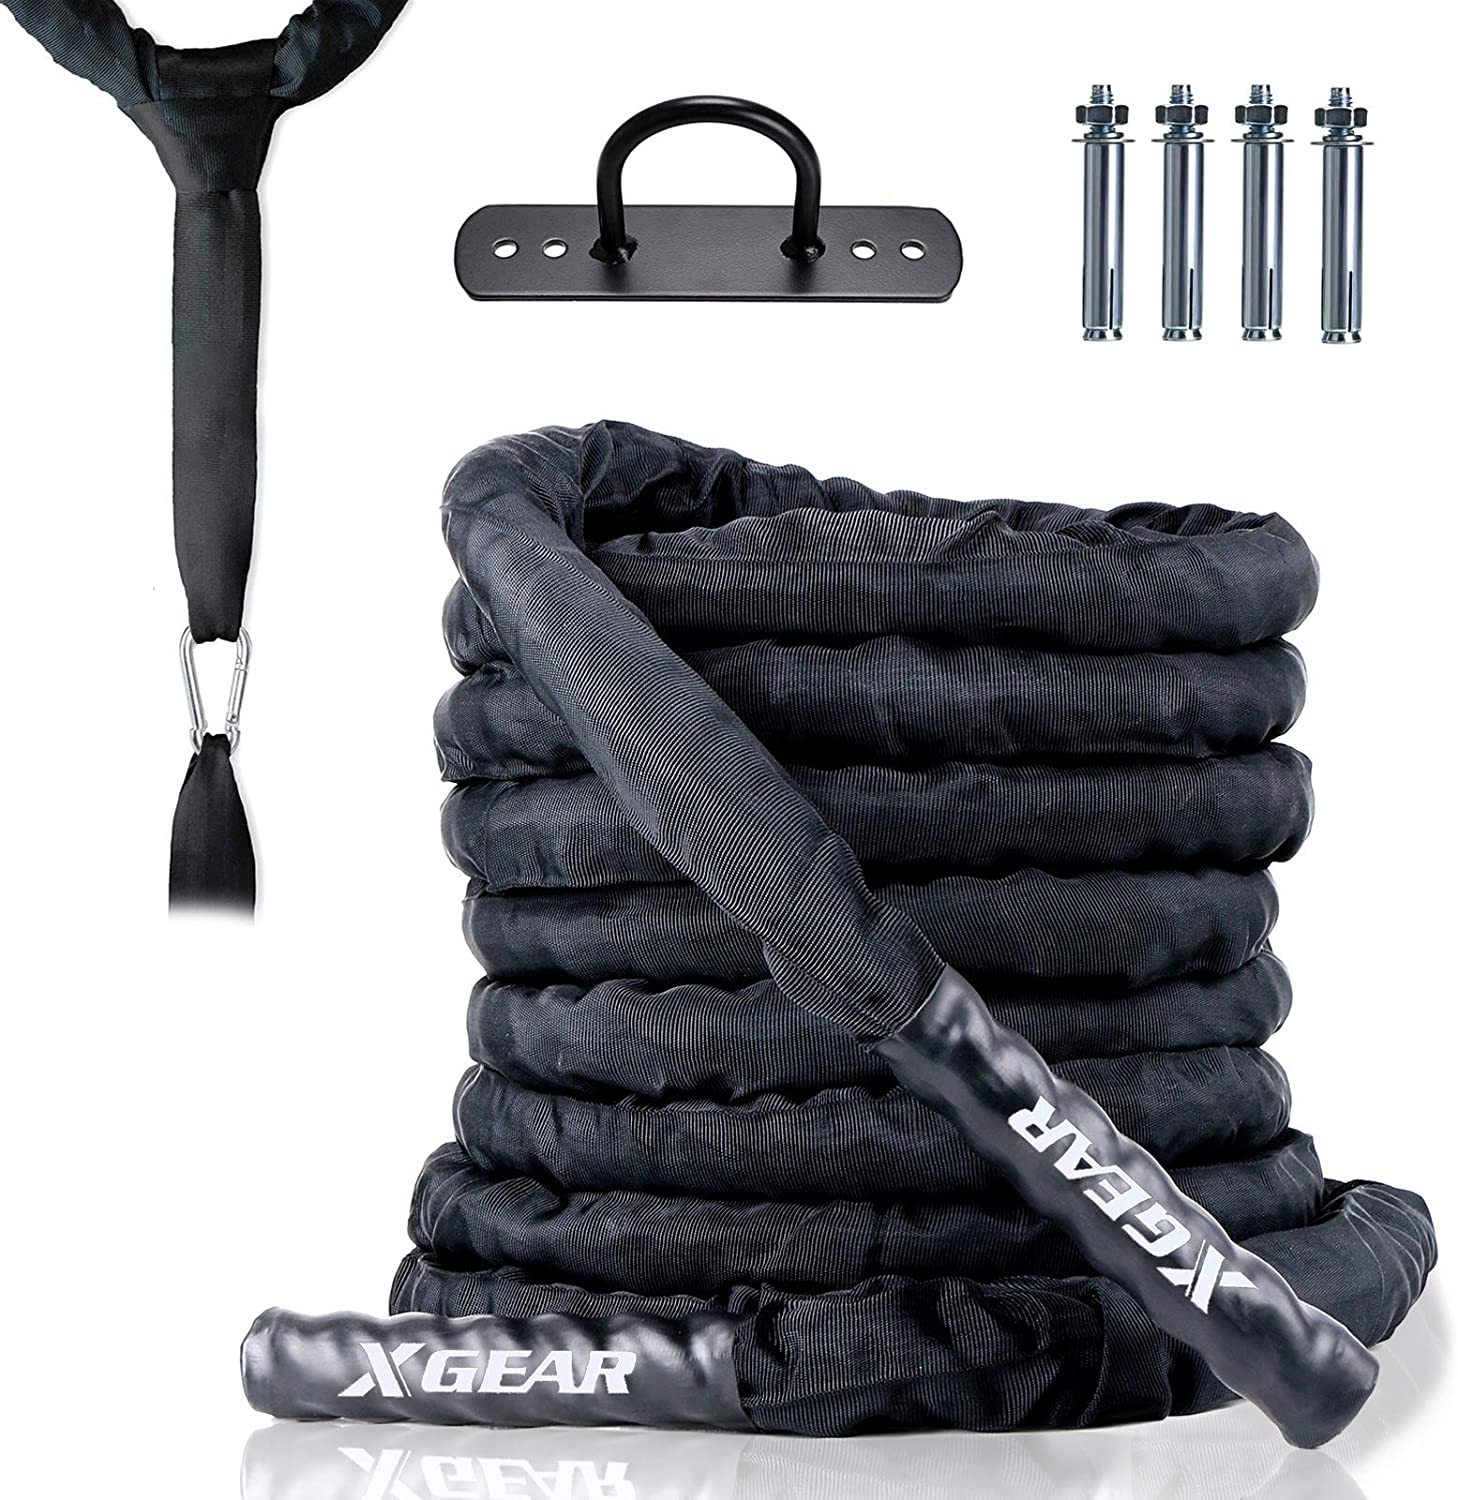 XGEAR Heavy Battle Rope,1.5'' Dia, 30' 40' Lengths Workout Rope with Upgraded Polyester Cover, Anchor Strap, Wall Mount Kit,Undulation Ropes for Home Gym & Outdoor Strength Training, Cardio Workout